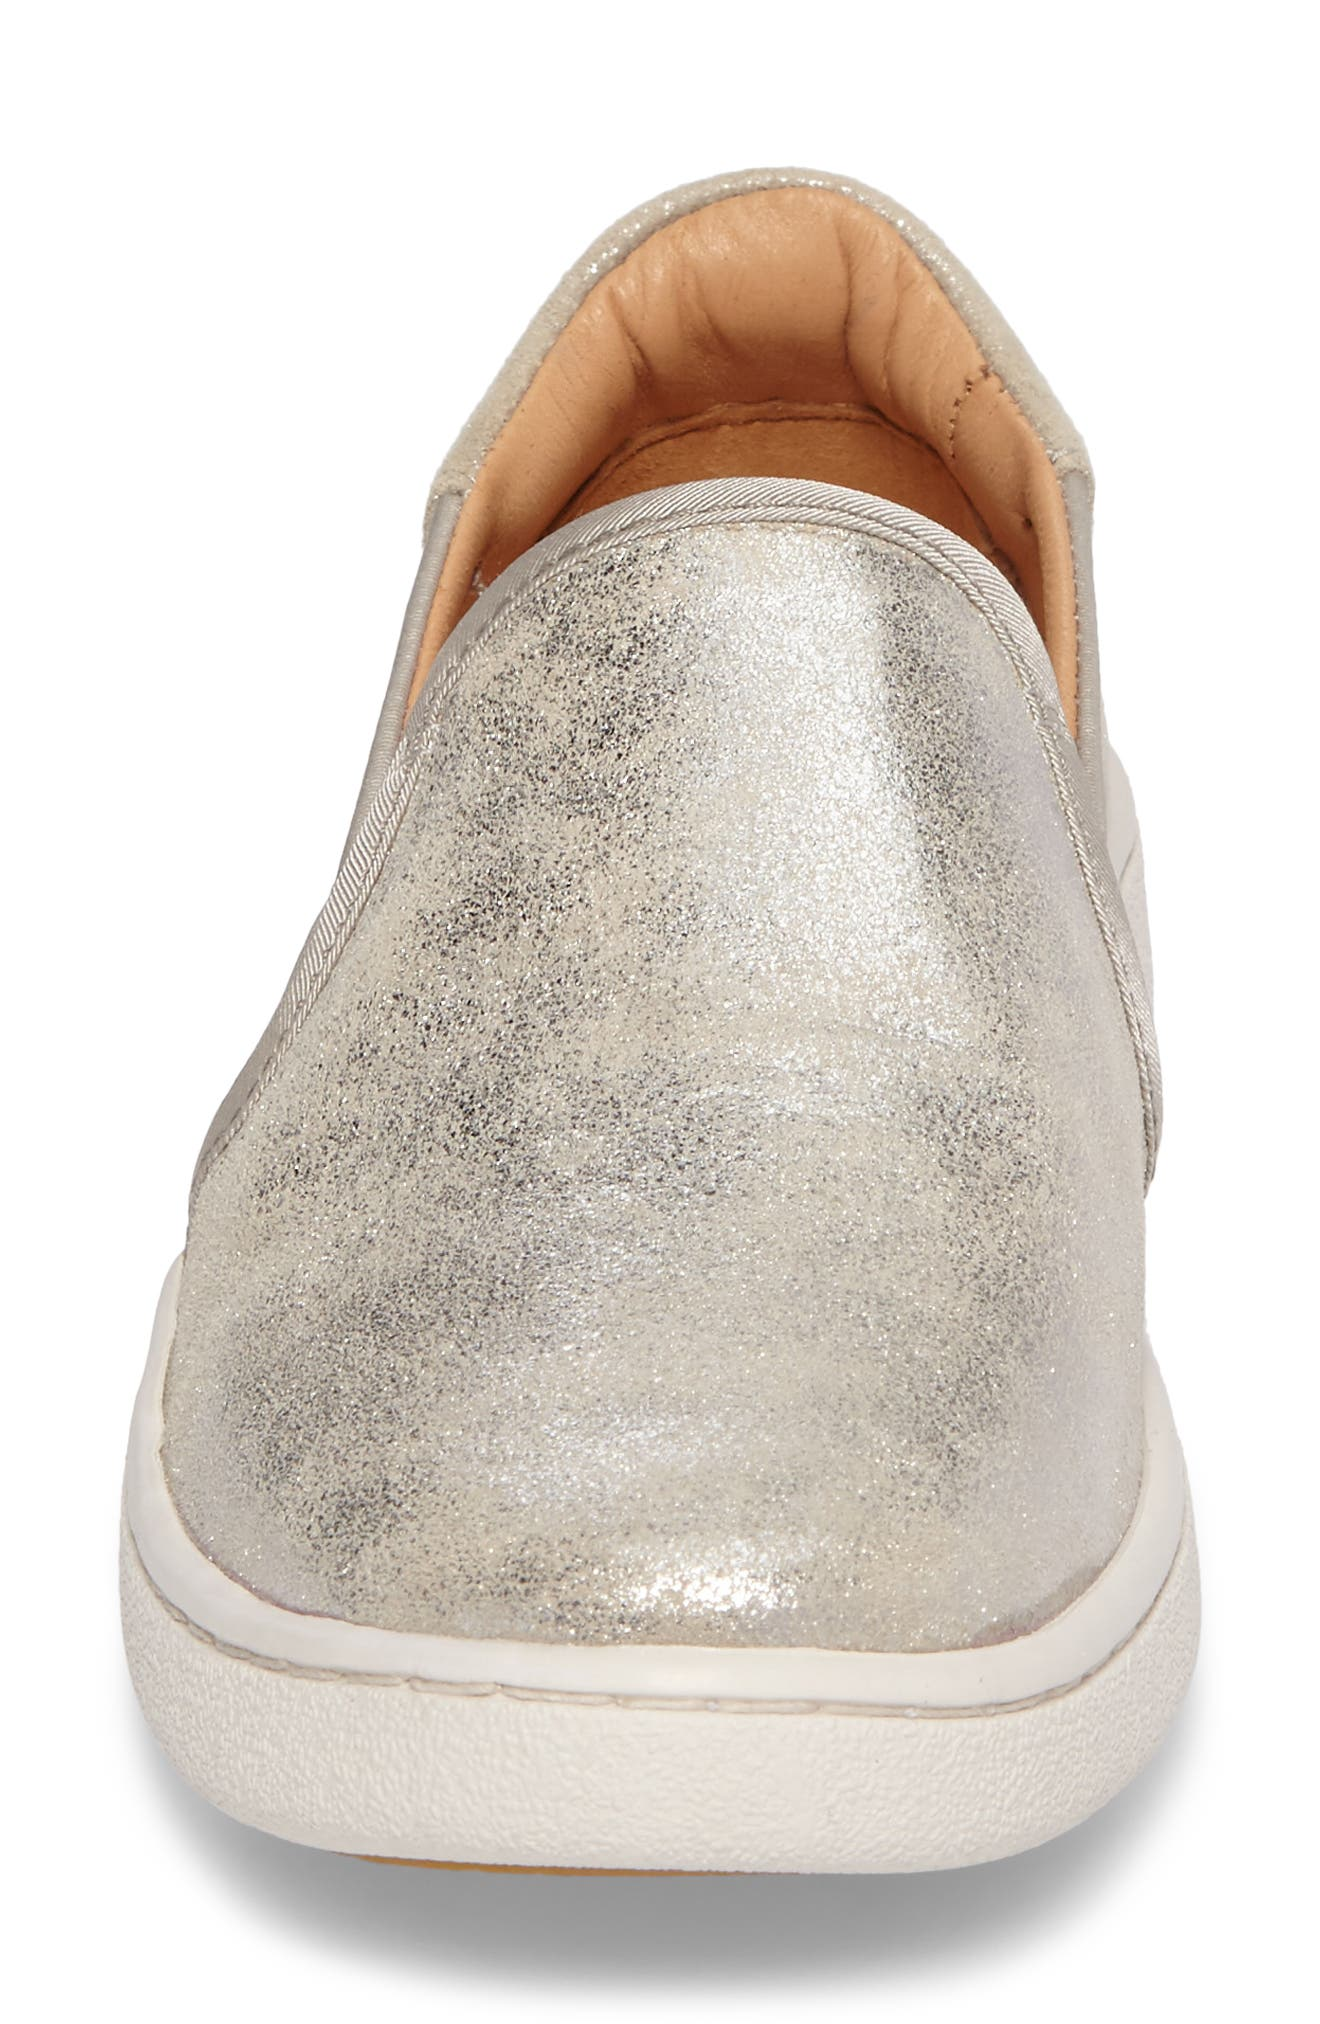 Cas Stardust Slip-On Sneaker,                             Alternate thumbnail 4, color,                             Silver Leather